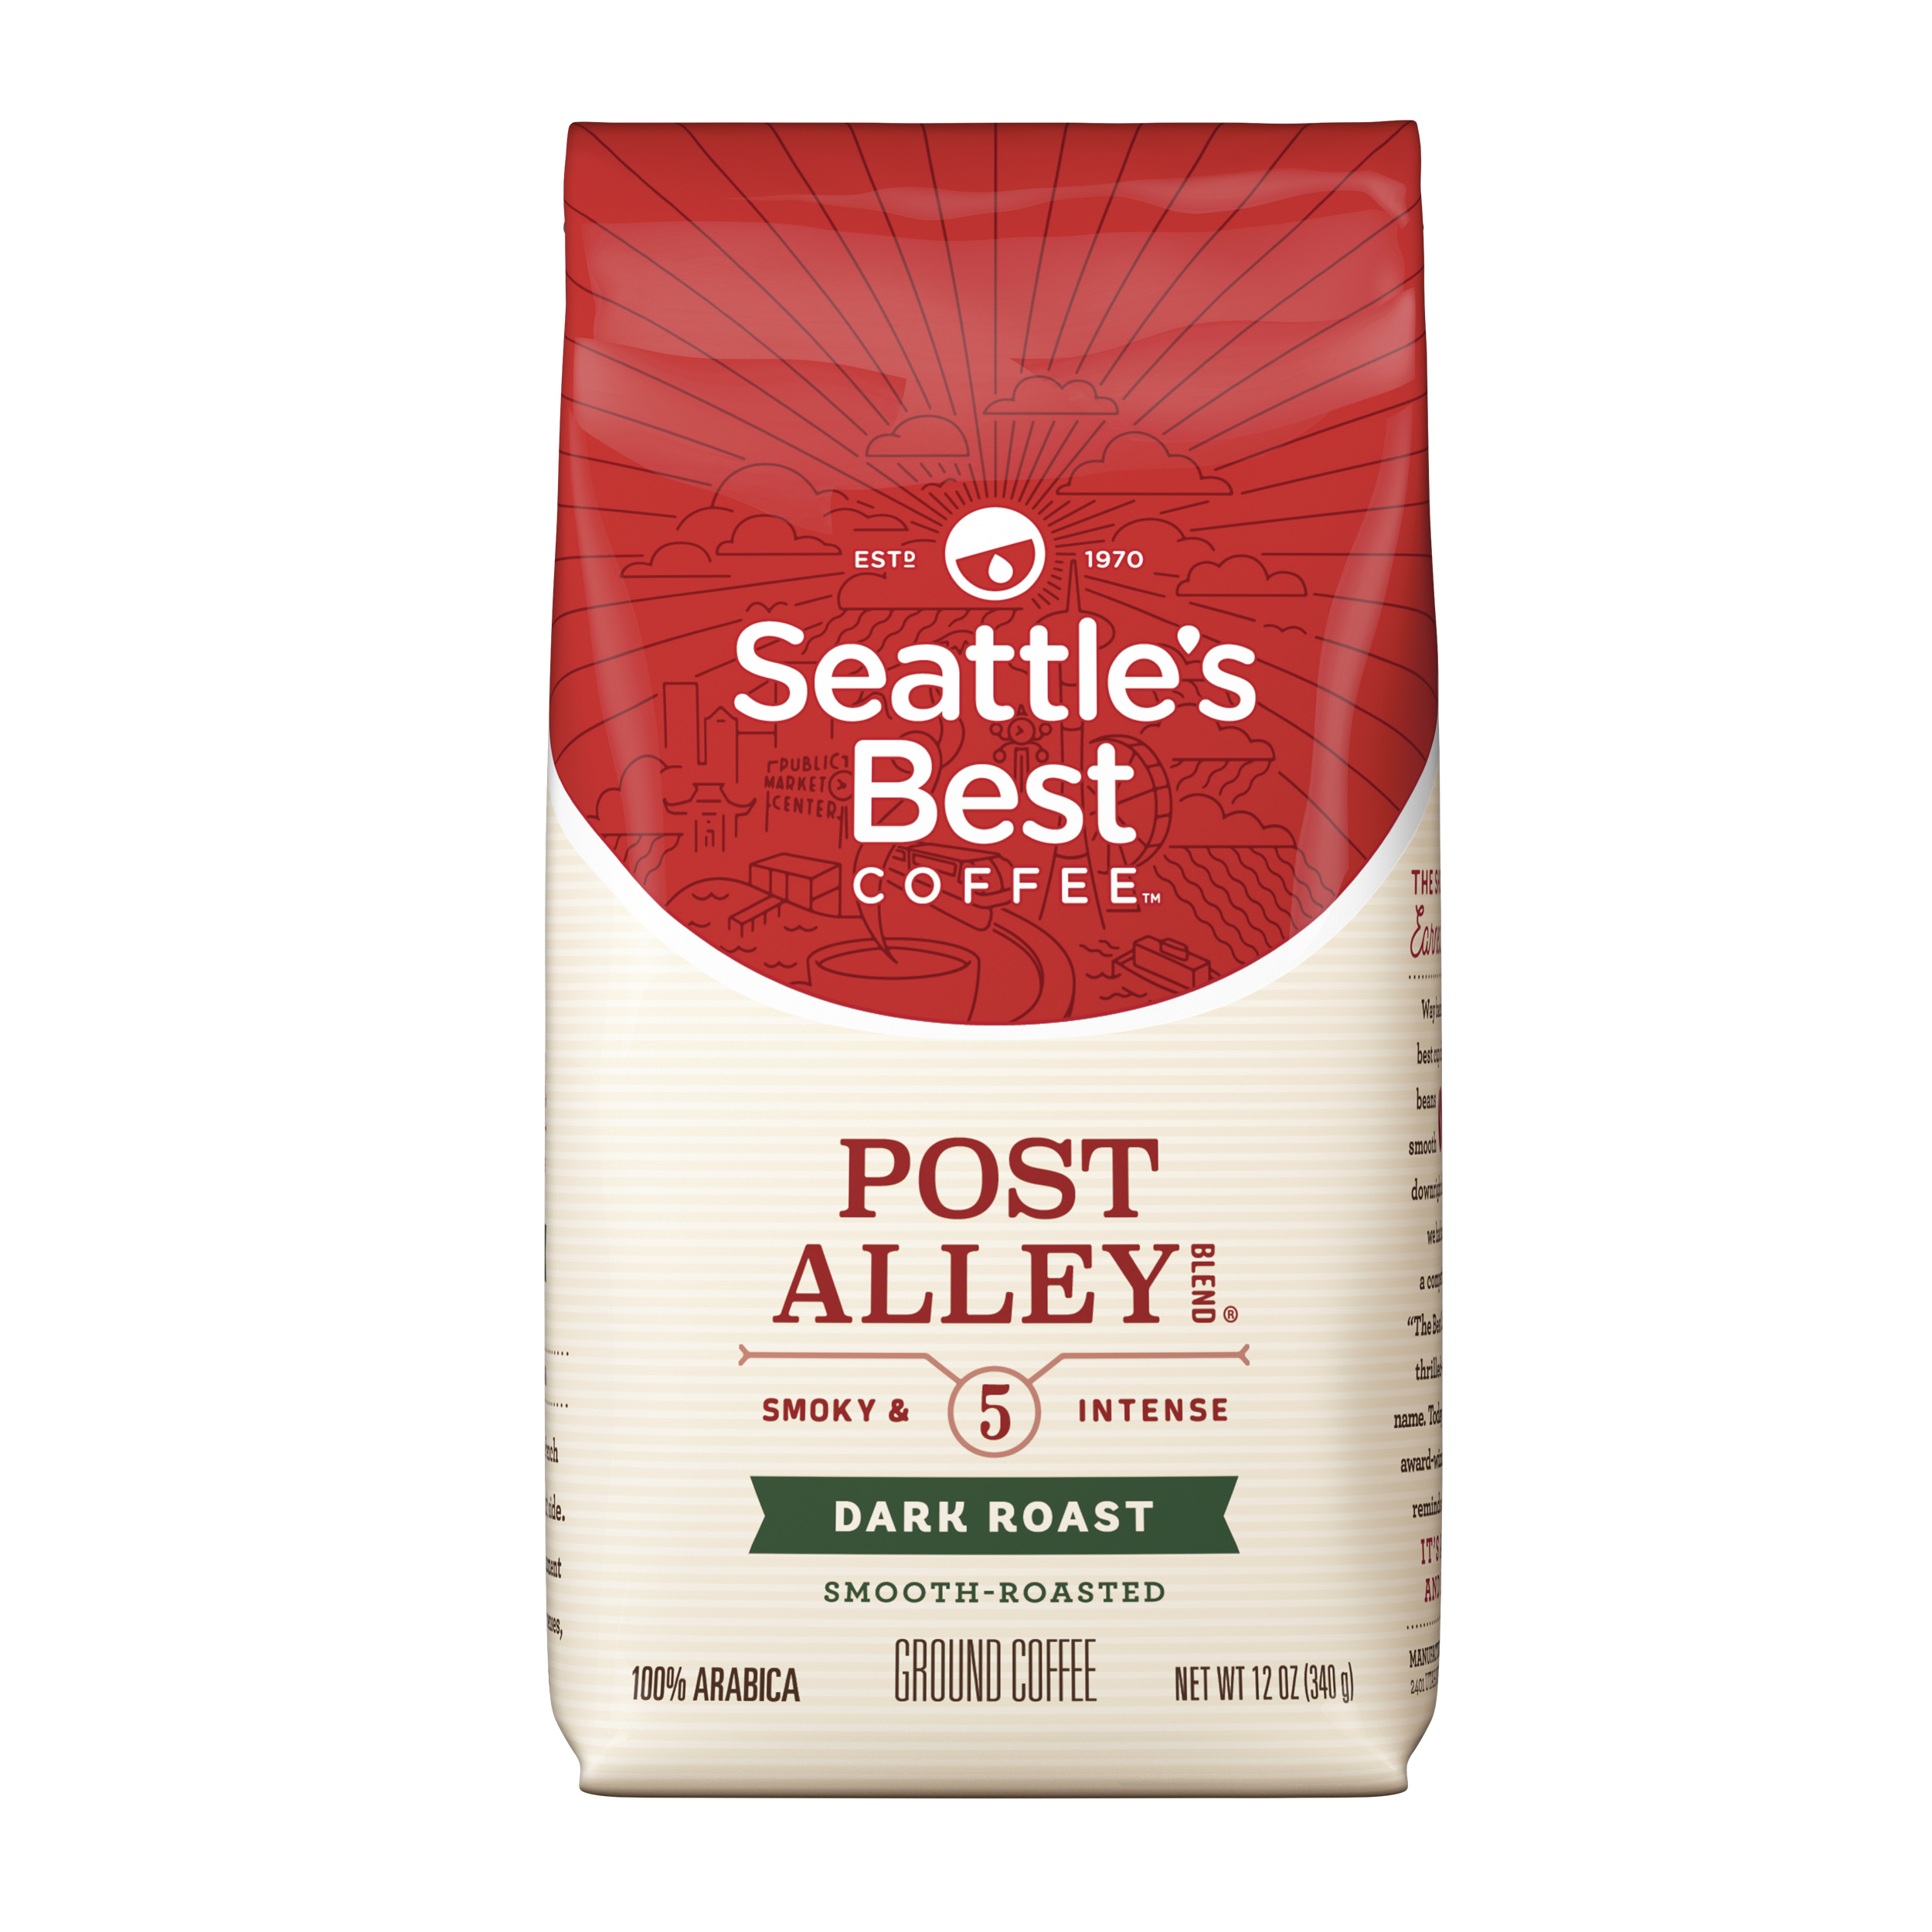 Seattle's Best Coffee Post Alley Blend (Previously Signature Blend No. 5) Dark Roast Ground Coffee, 12-Ounce Bag